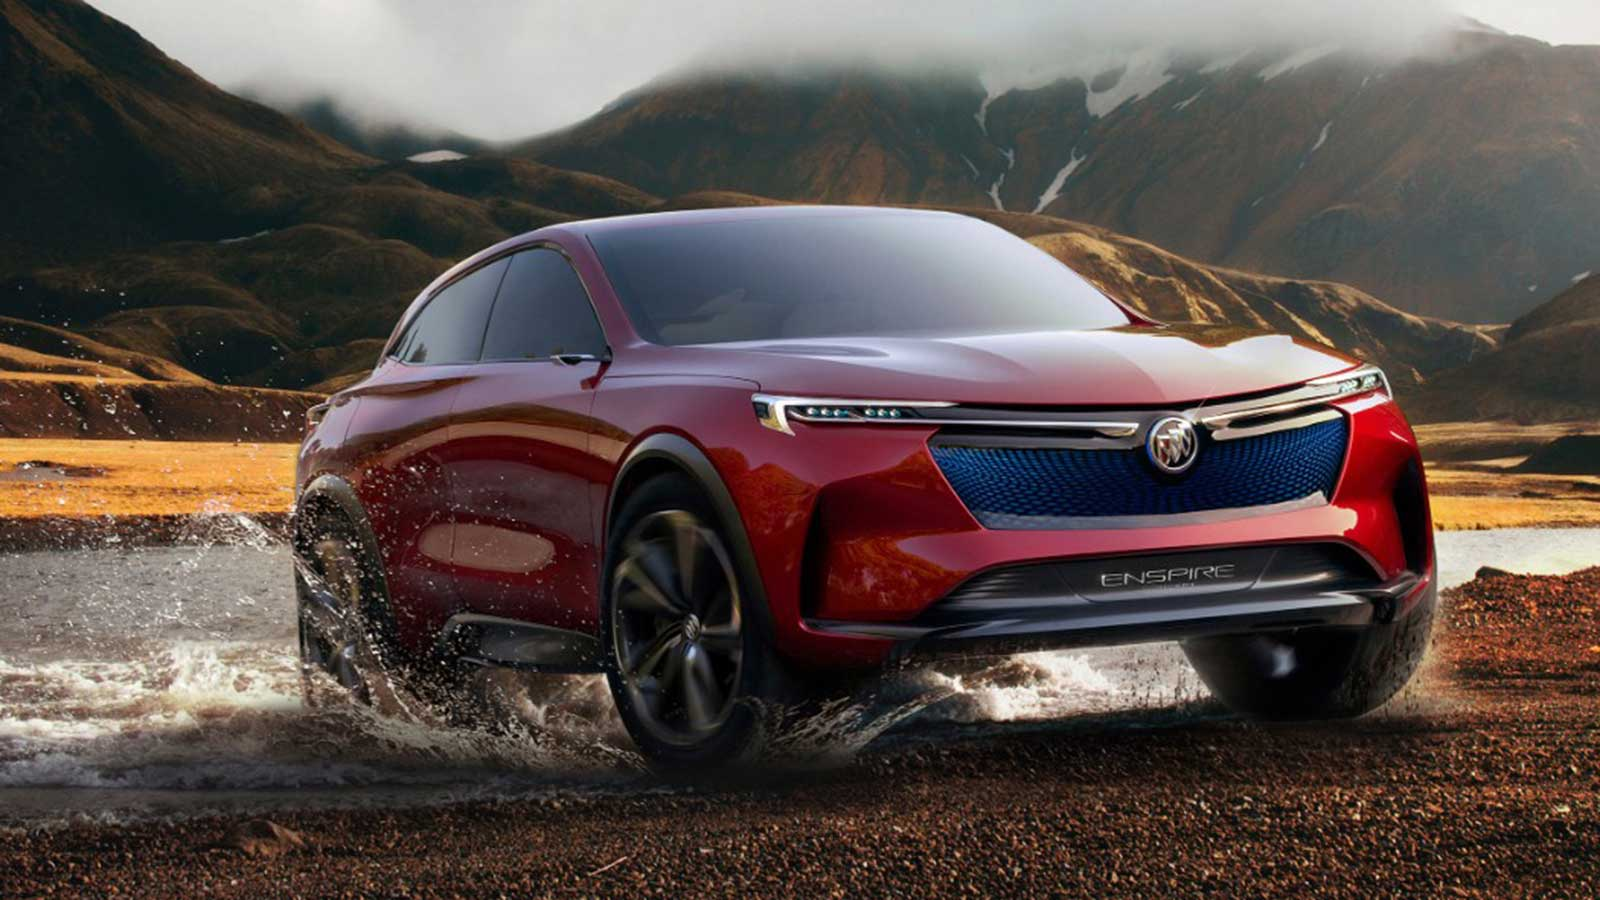 Buick Enspire Electric Concept SUV – Finally a Buick I'd Want to Buy